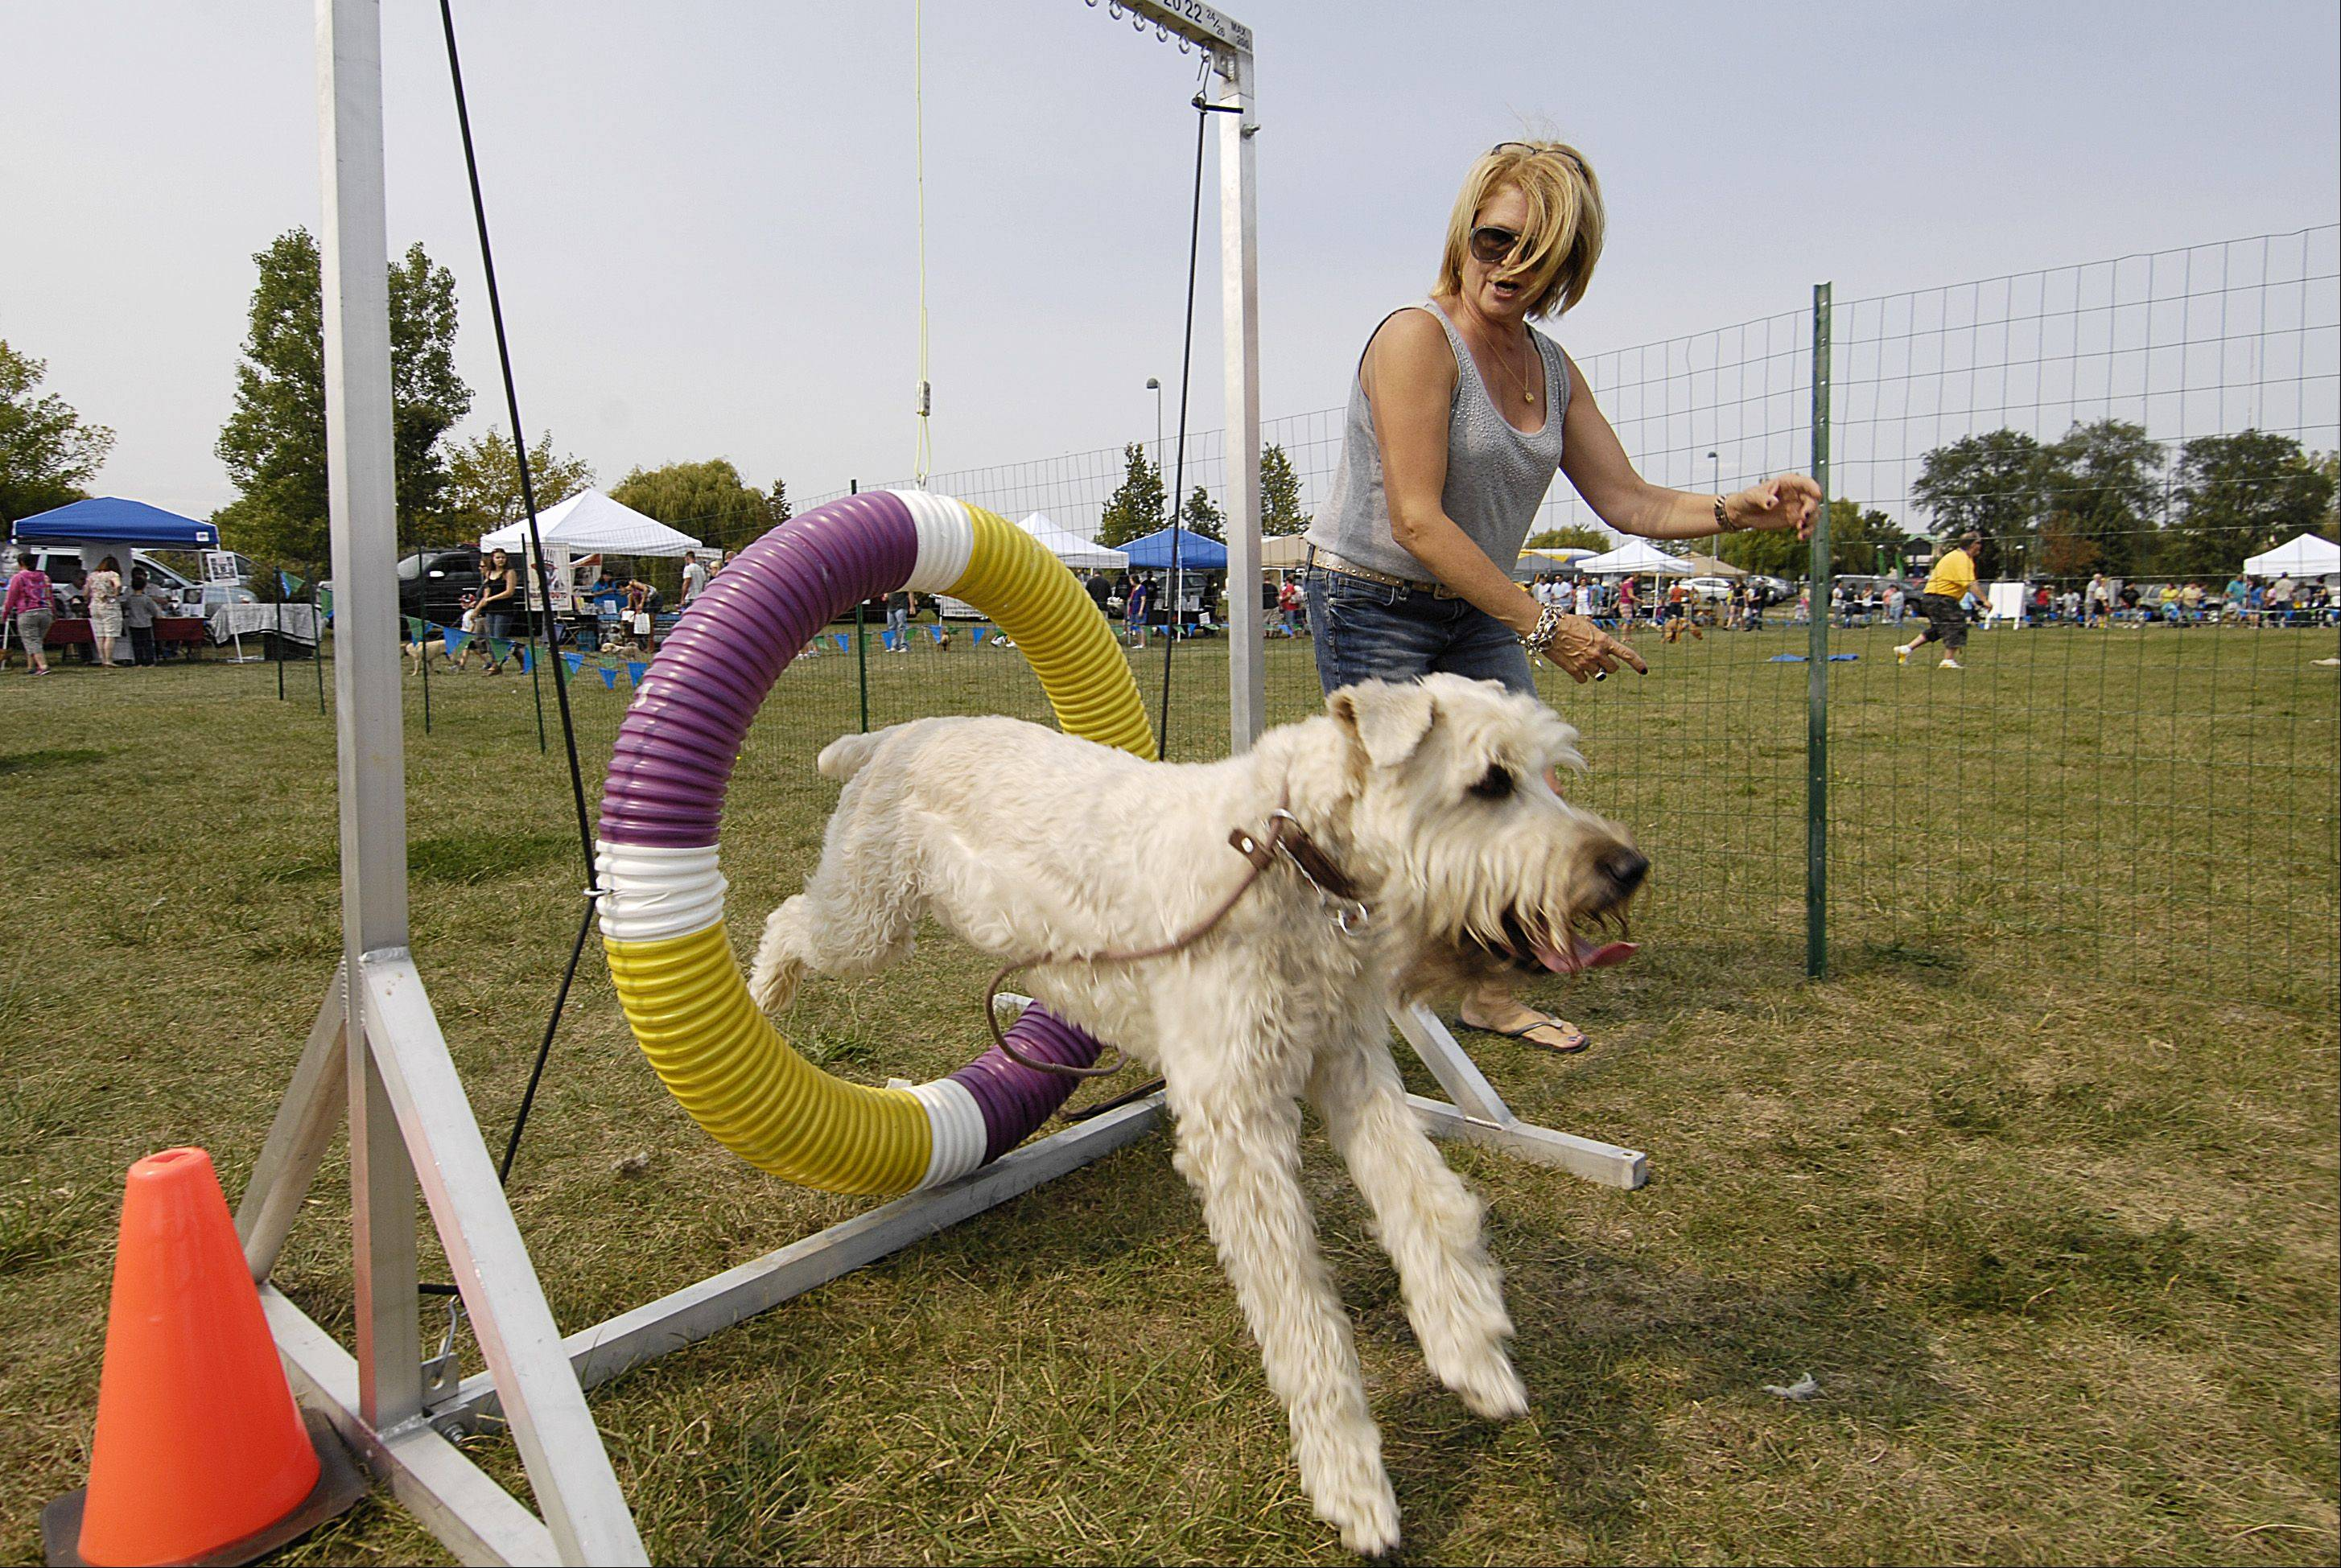 Dogs will be able to test their skill at an agility course during the fifth annual CSBarks Dog Festival Sunday in Carol Stream.